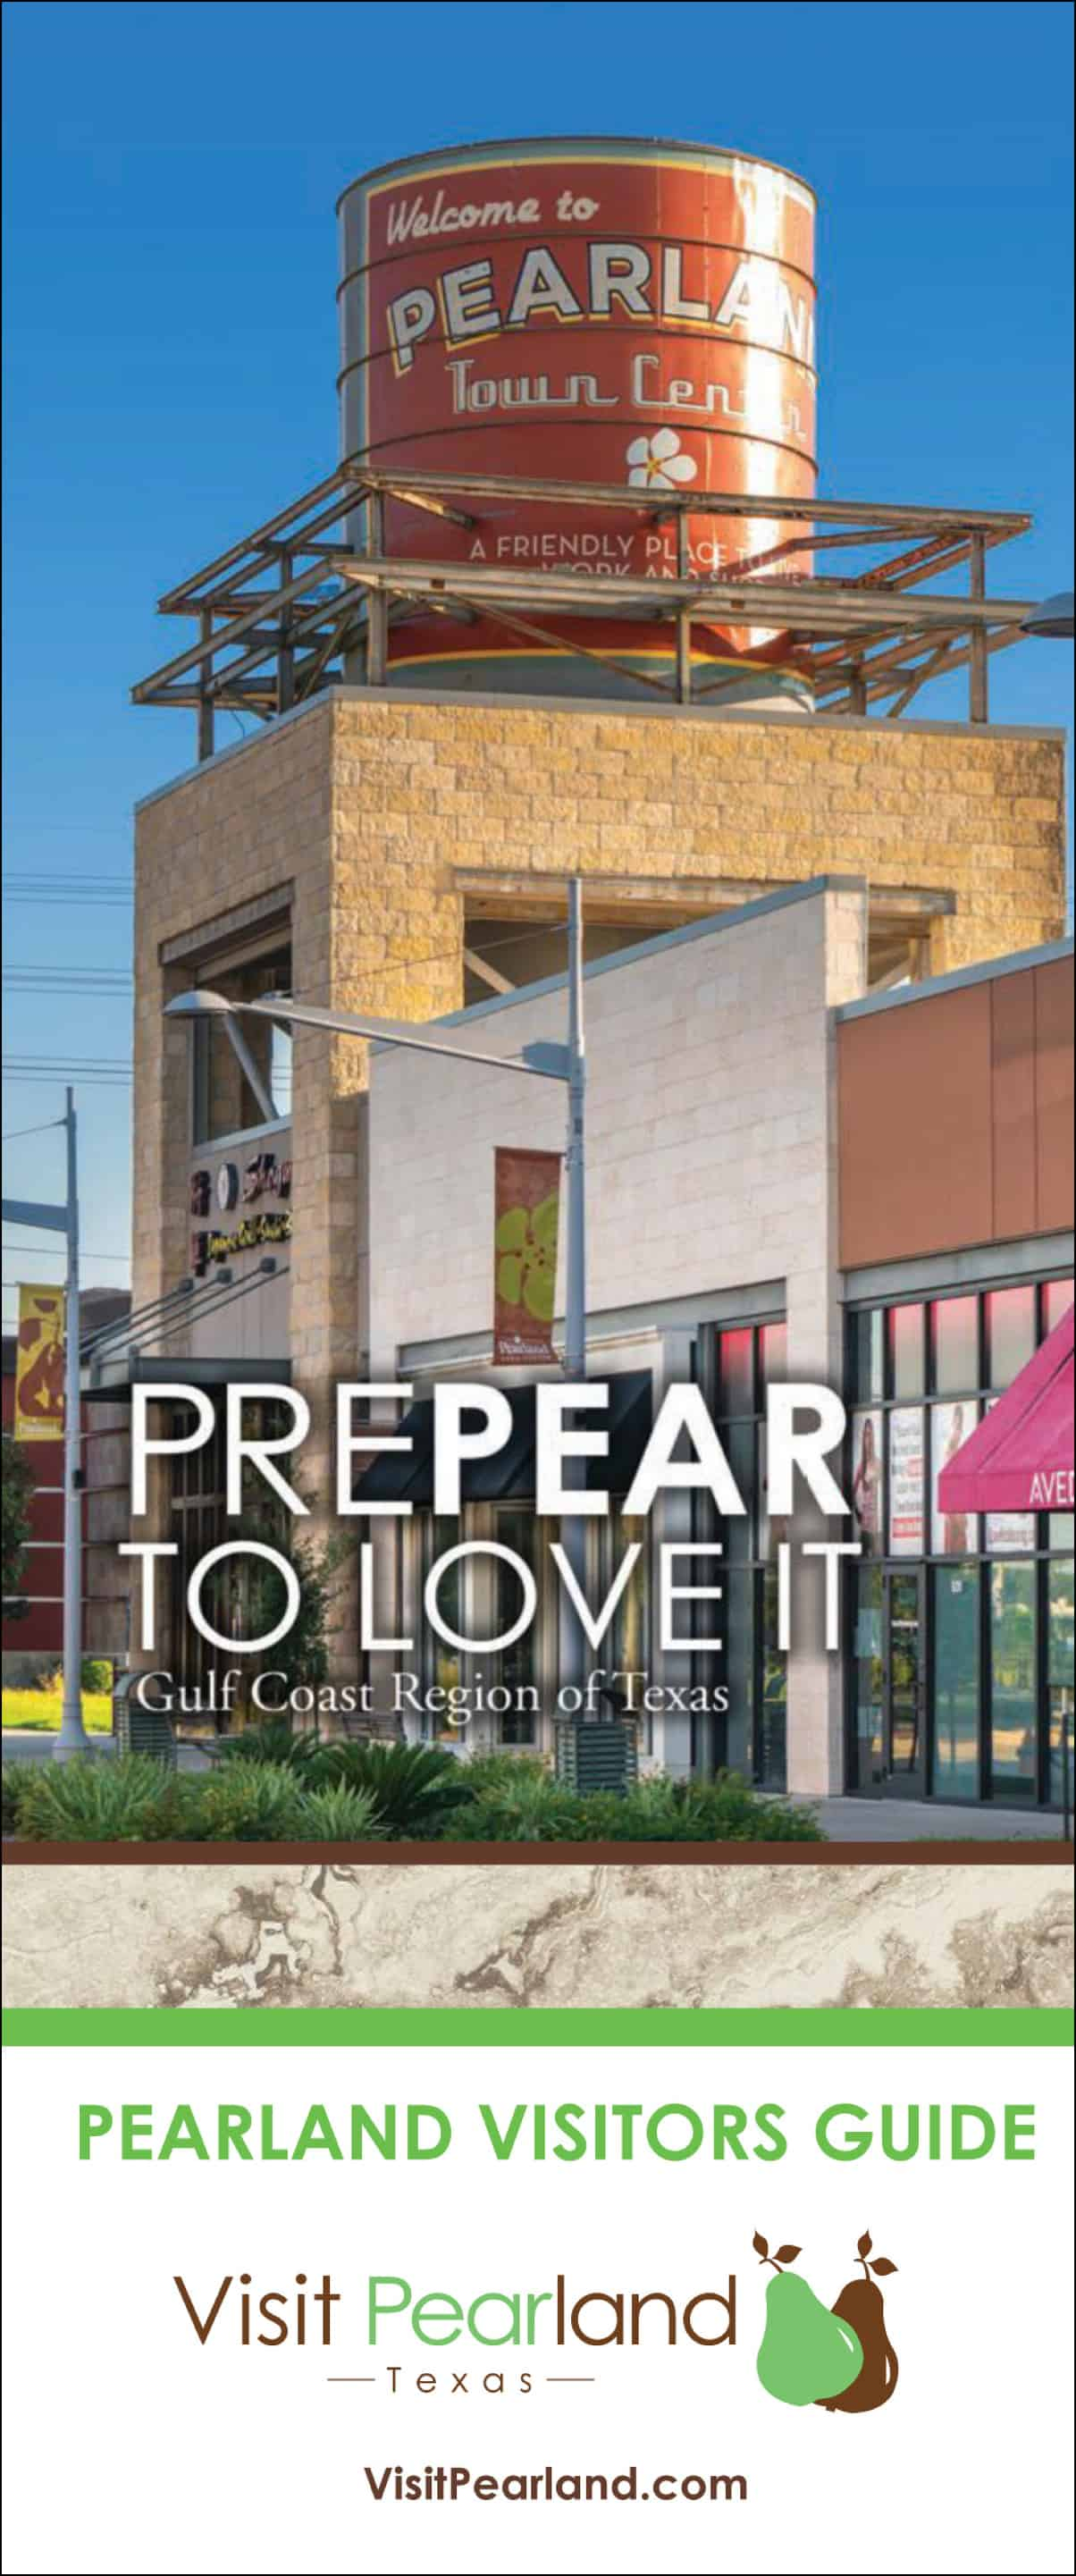 Pearland Visitor Guide